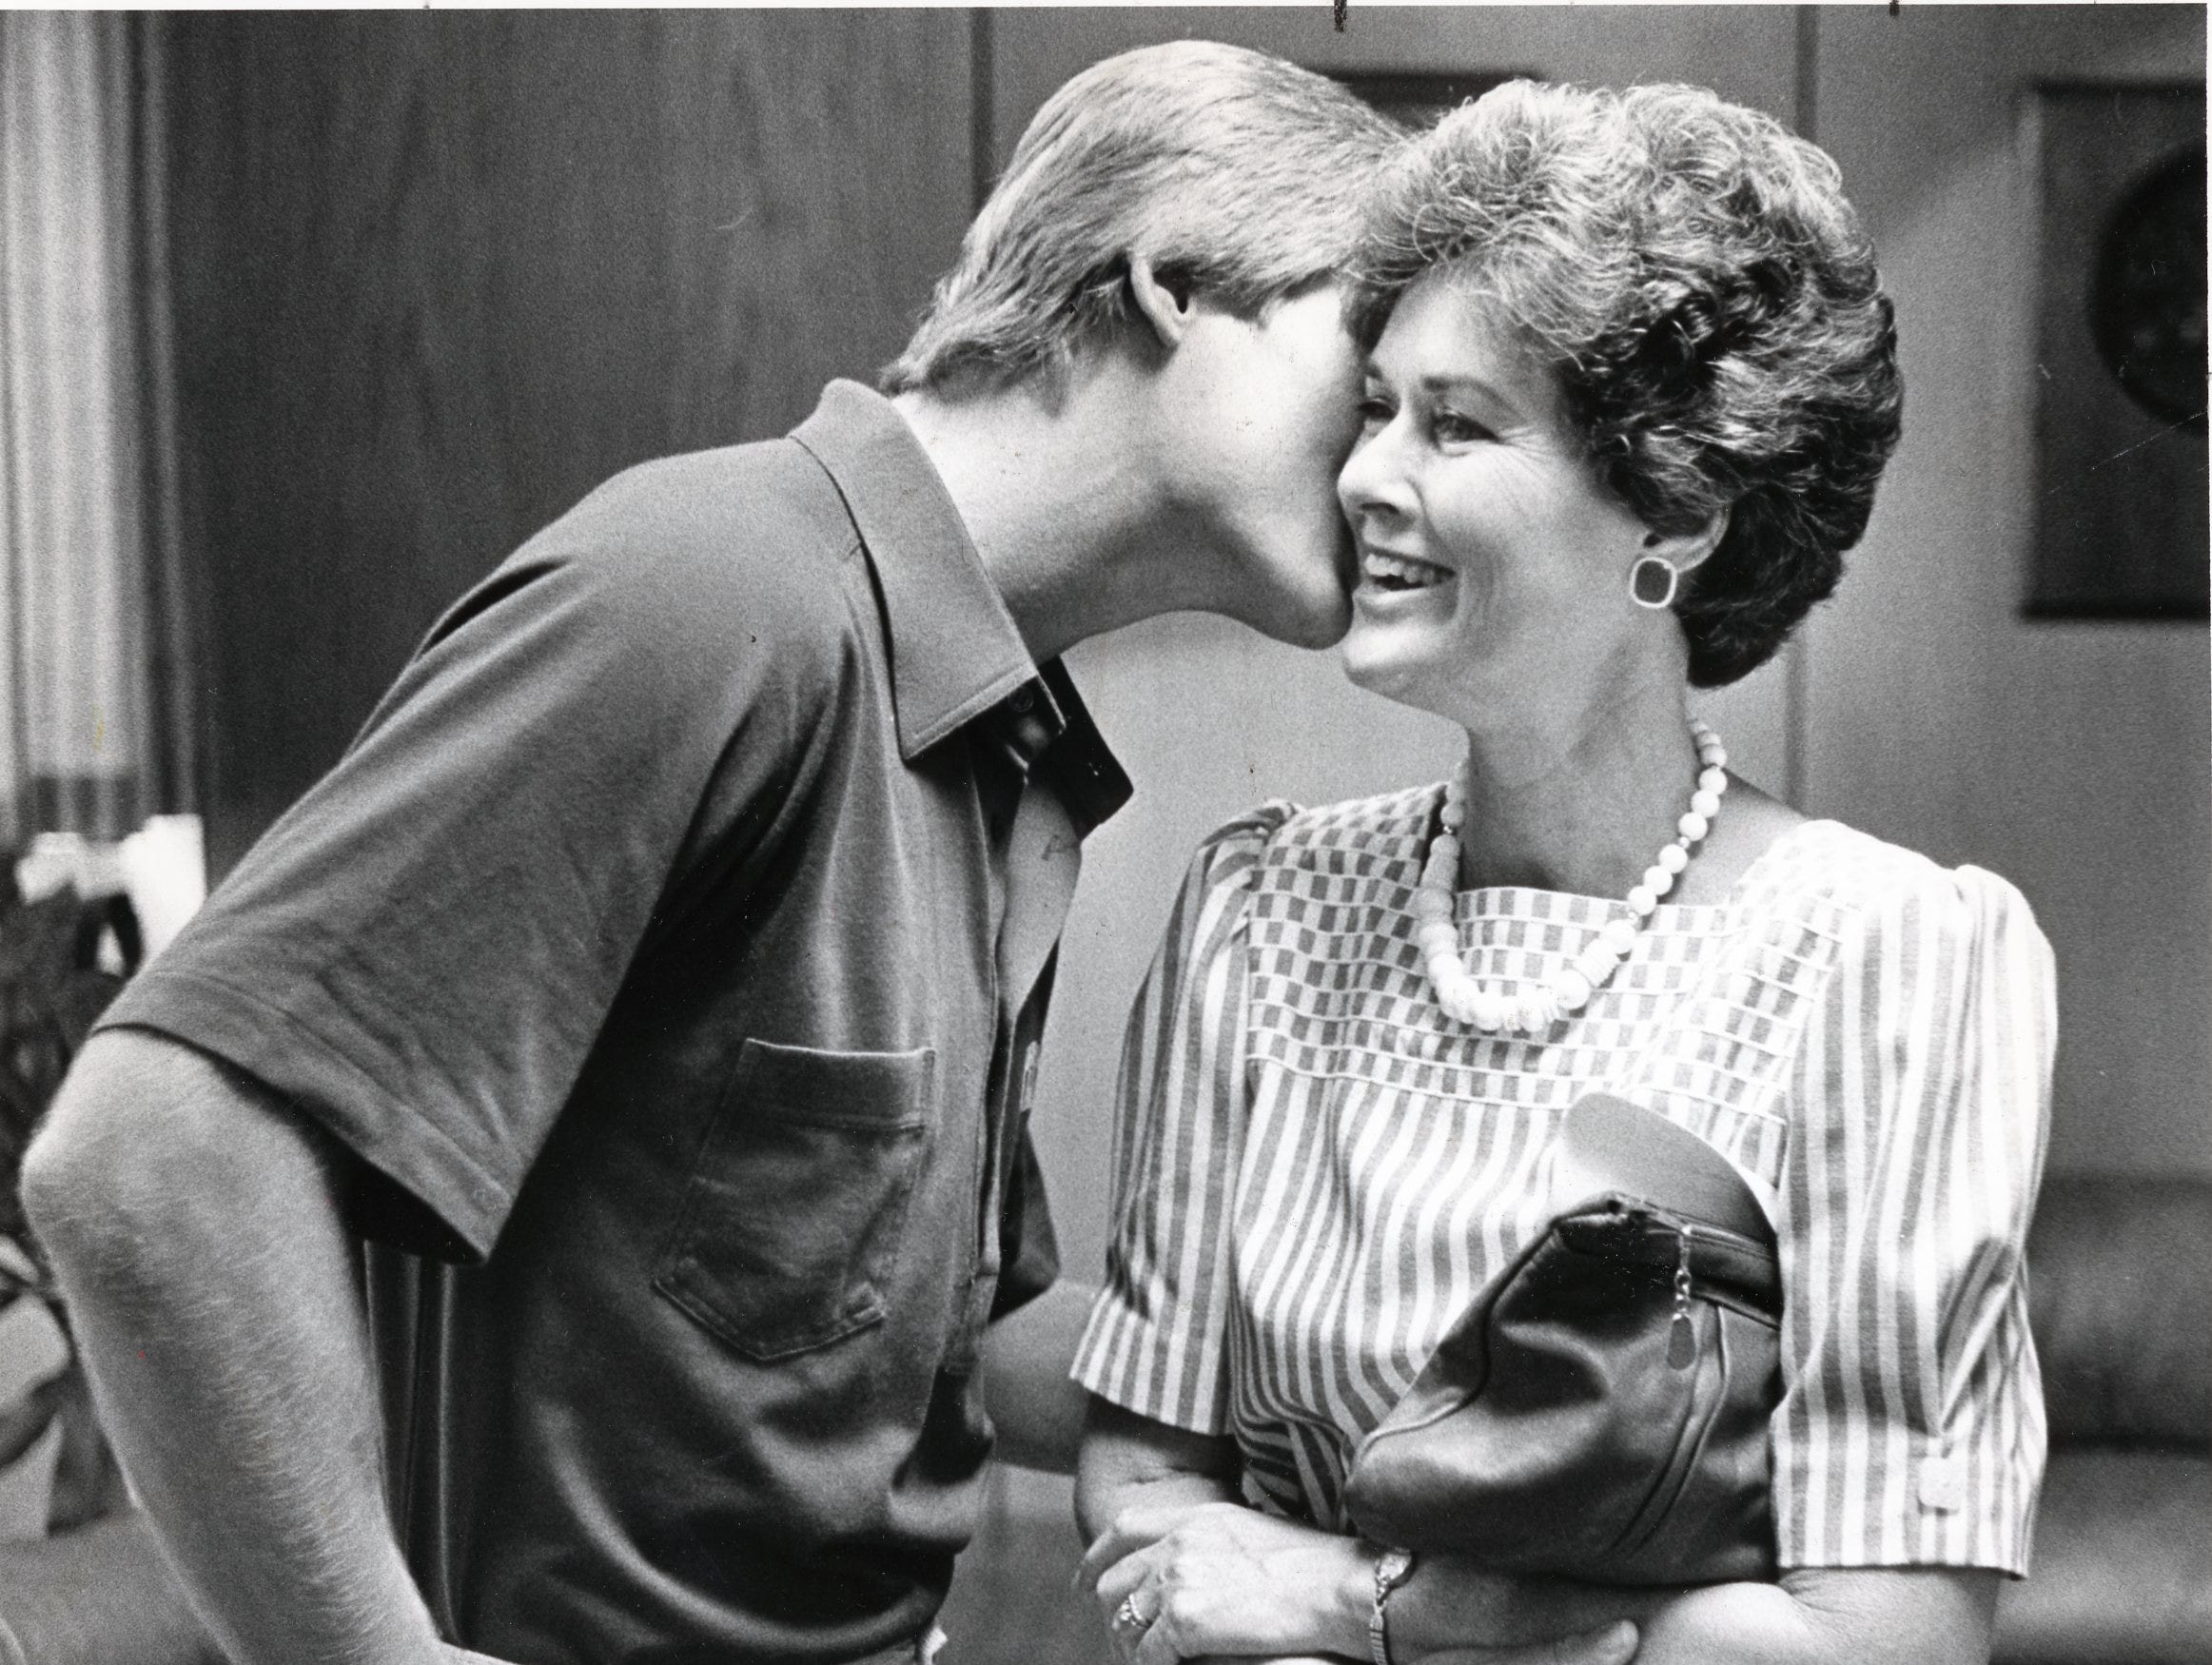 Daryl Dickey kisses his mom, JoAnne, after his father was officially named the new athletic director at the University of Tennessee, August, 1985.